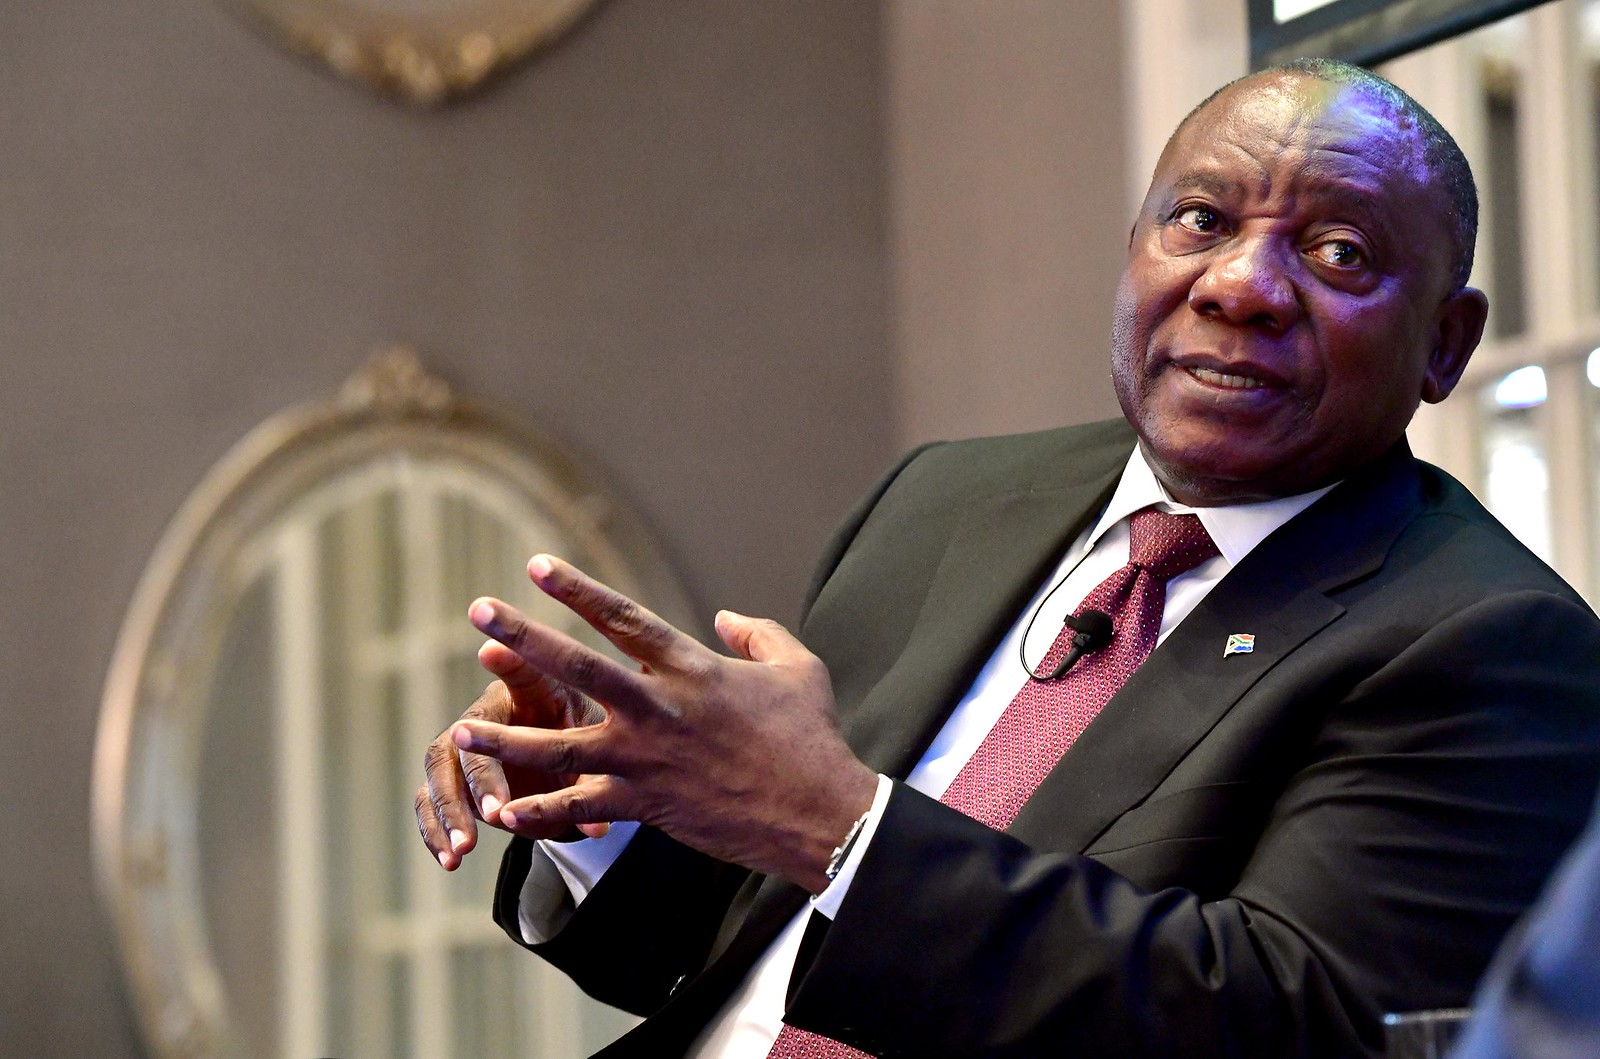 President Cyril Ramaphosa was accused of failing to disclose funding for his election campaign